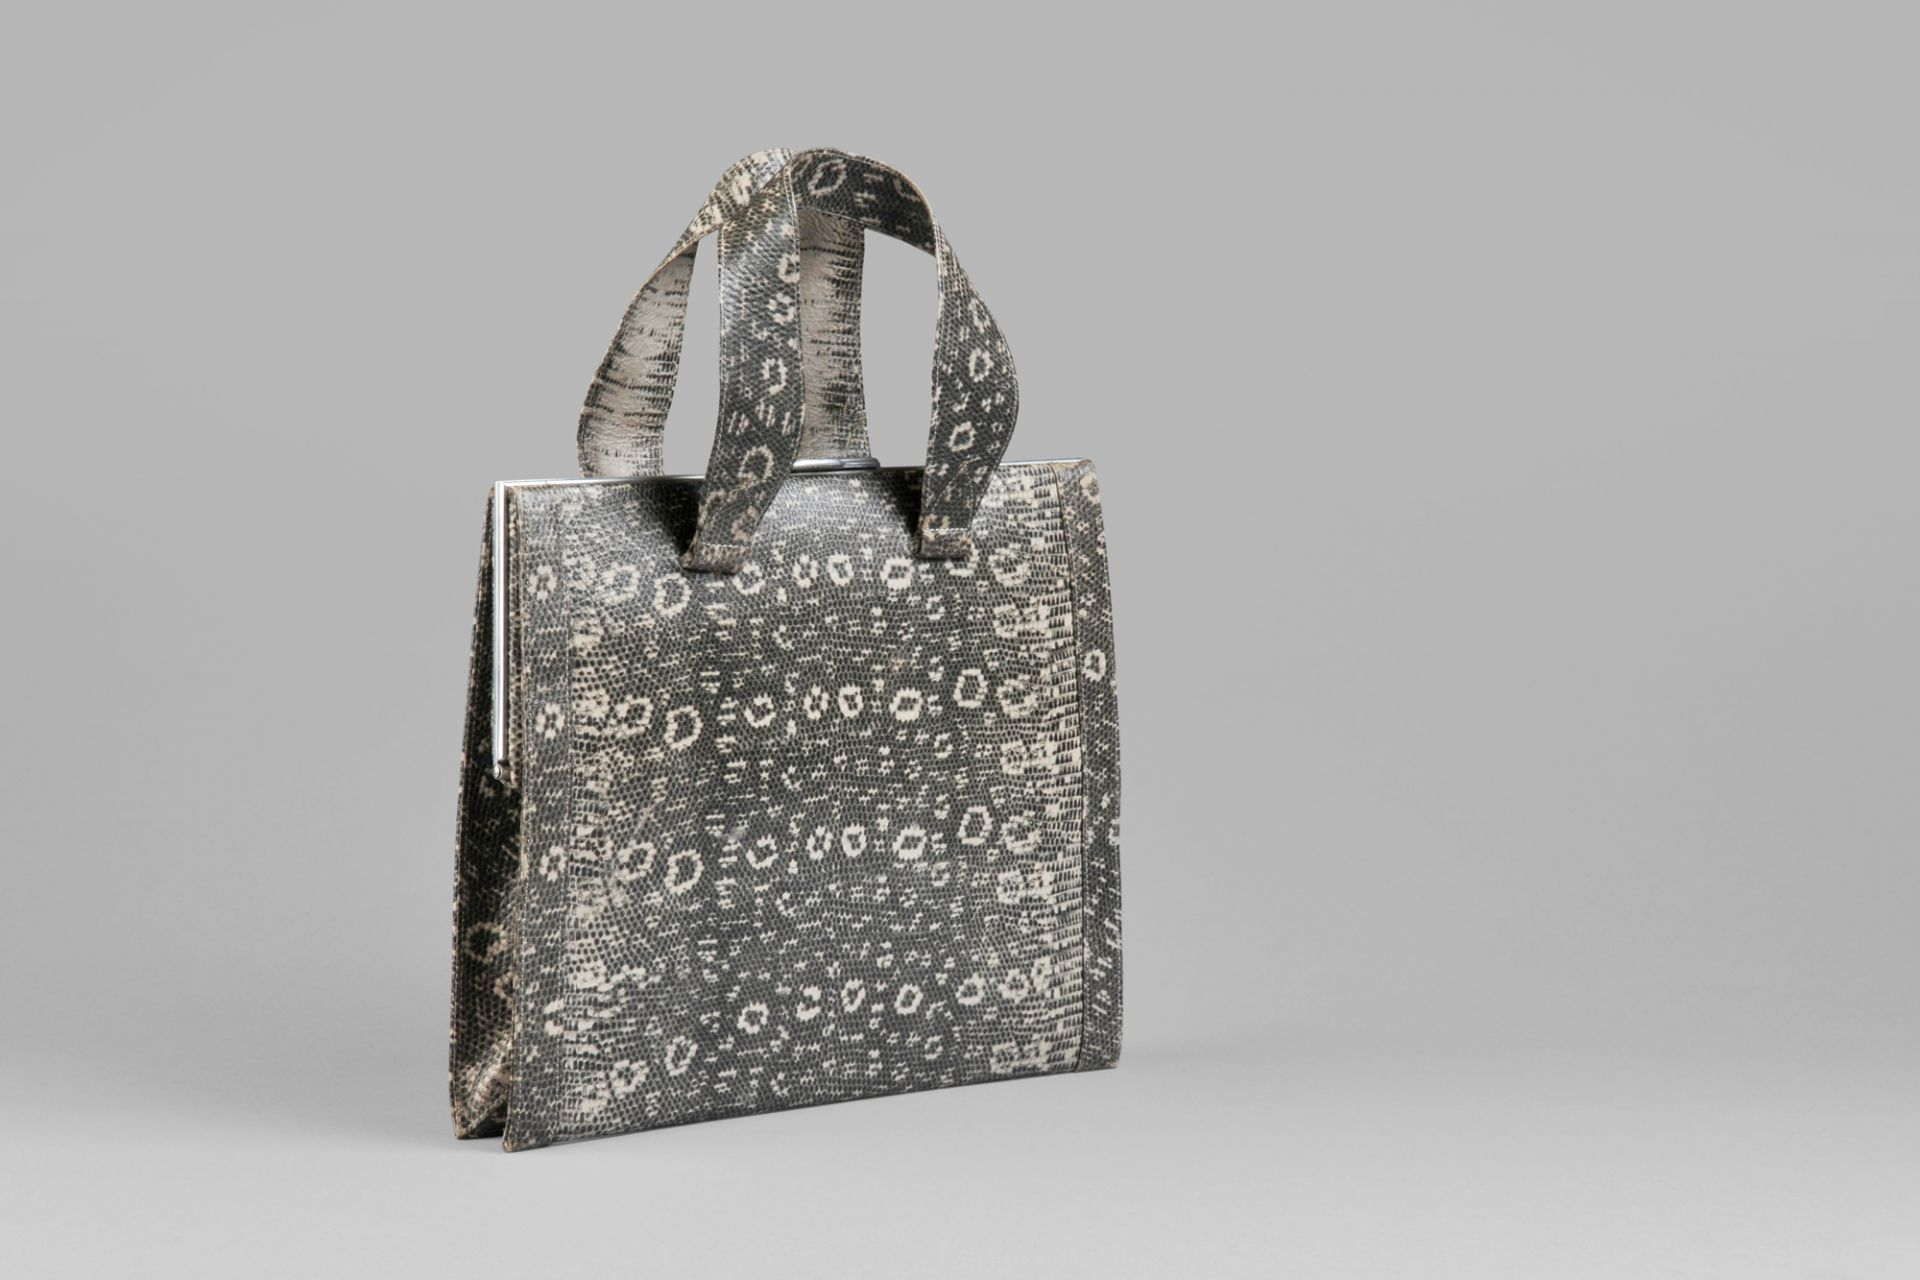 Handbag made of paper with imitation of lizard leather, Goldpfeil, Offenbach/Main, 1940